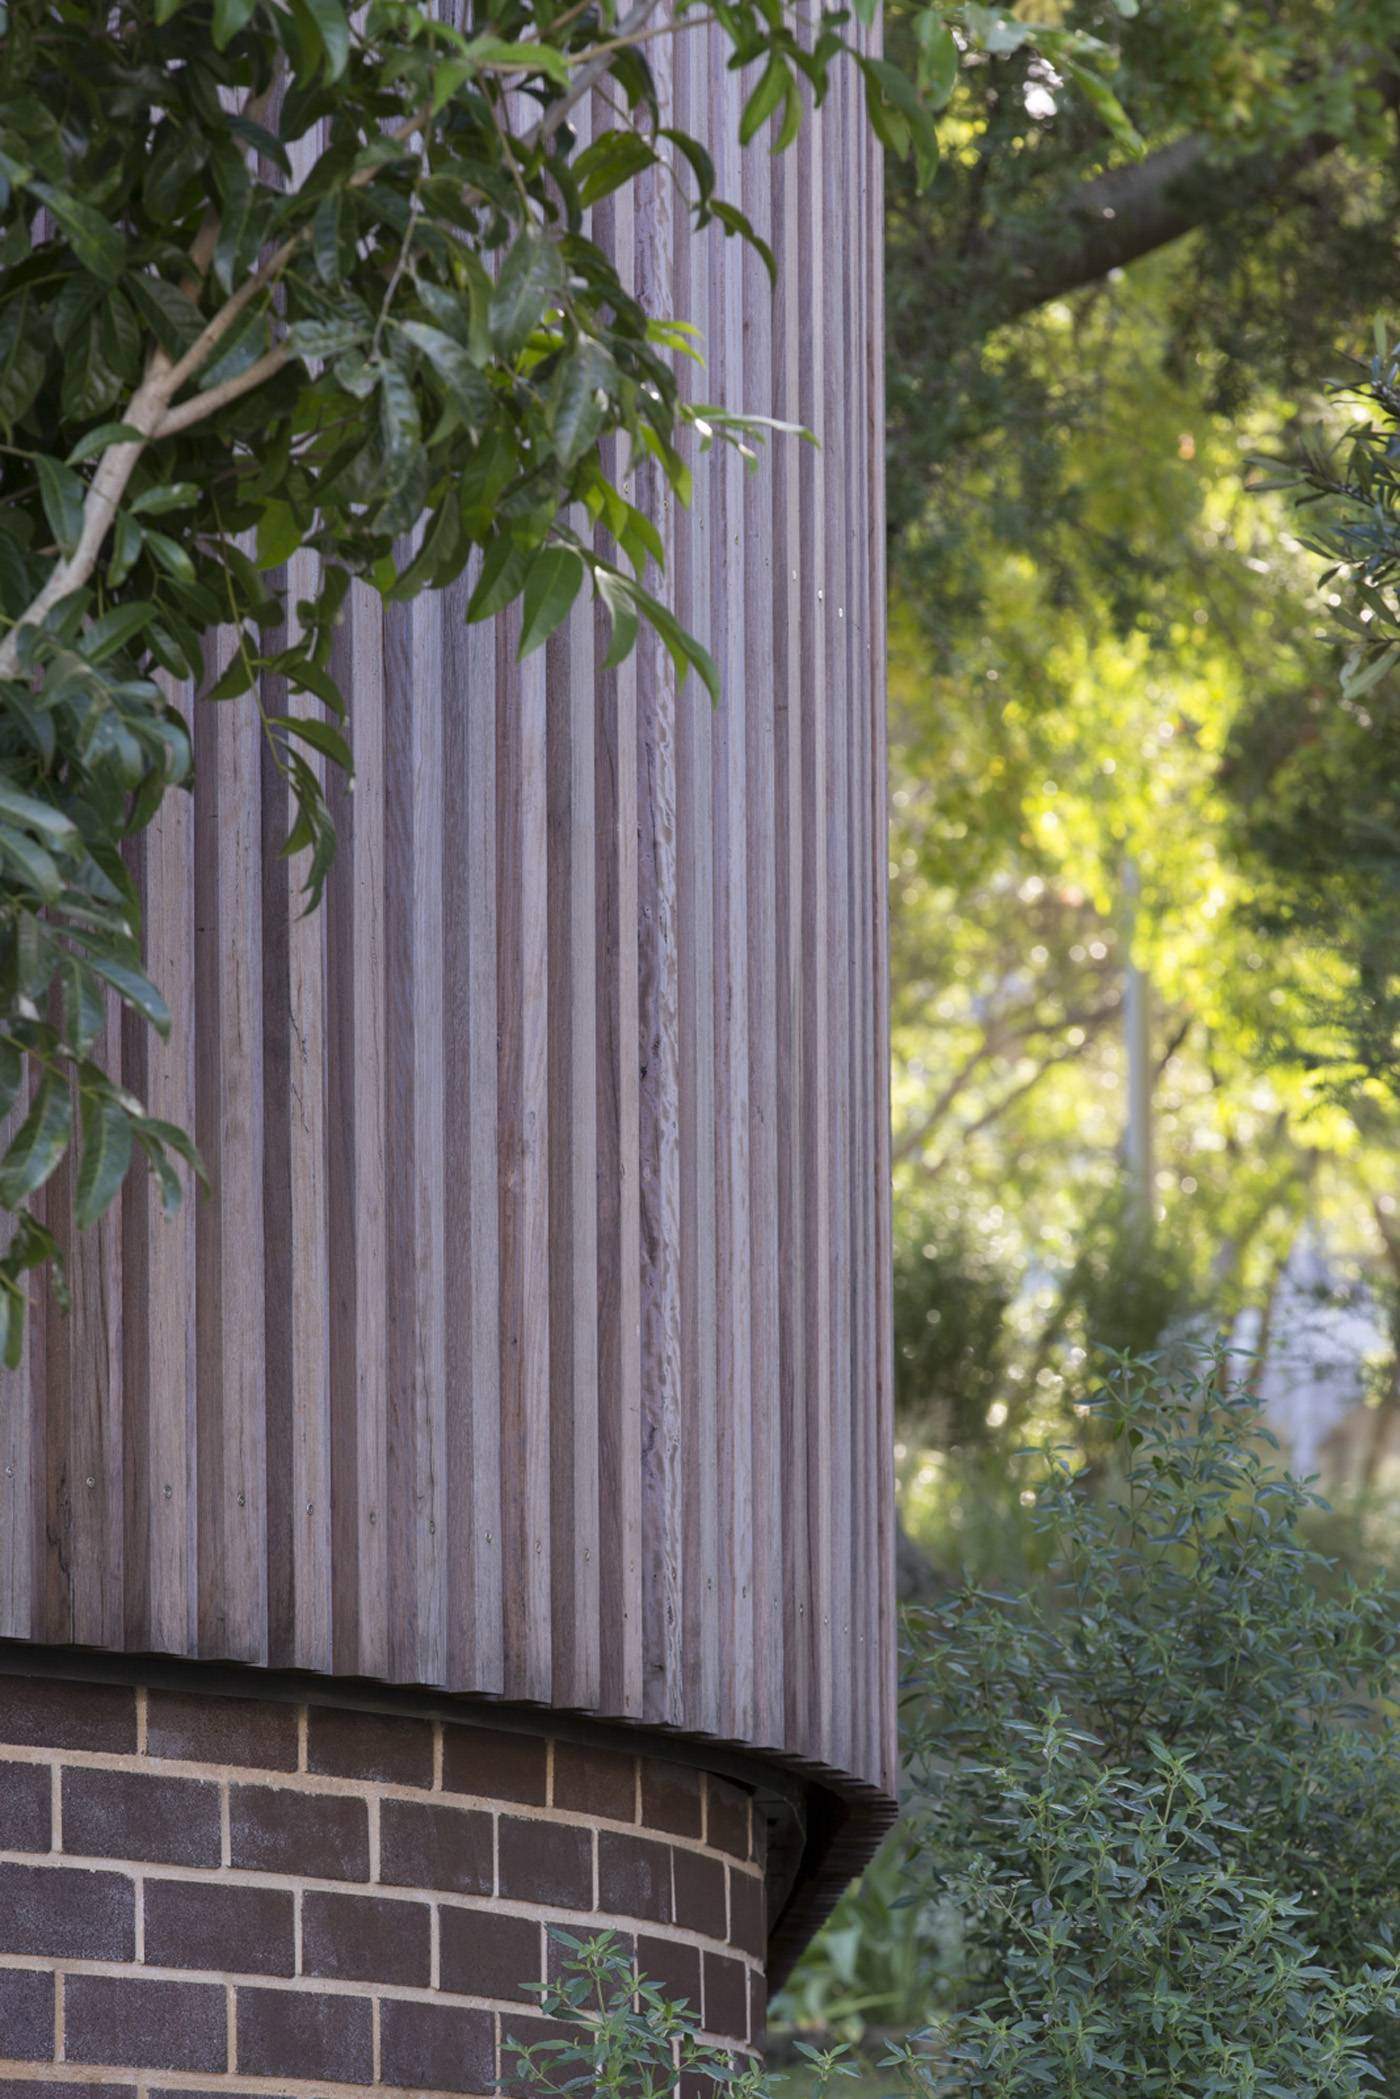 St James Park Amenities, detail wooden privacy screening